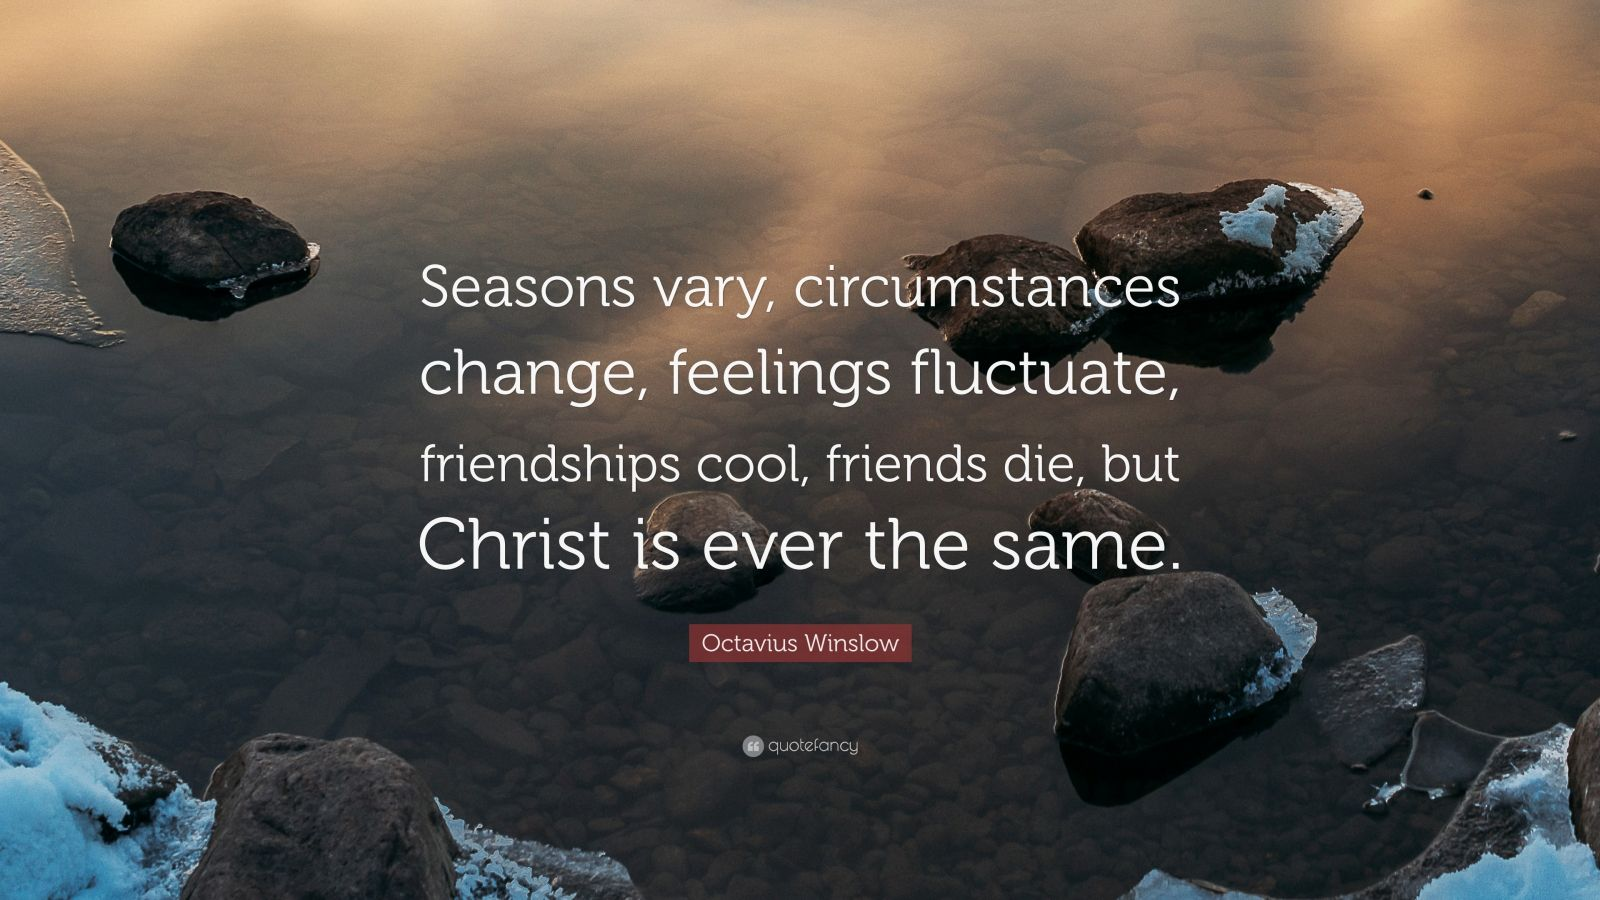 """Octavius Winslow Quote: """"Seasons vary, circumstances change, feelings fluctuate, friendships cool, friends die, but Christ is ever the same."""""""